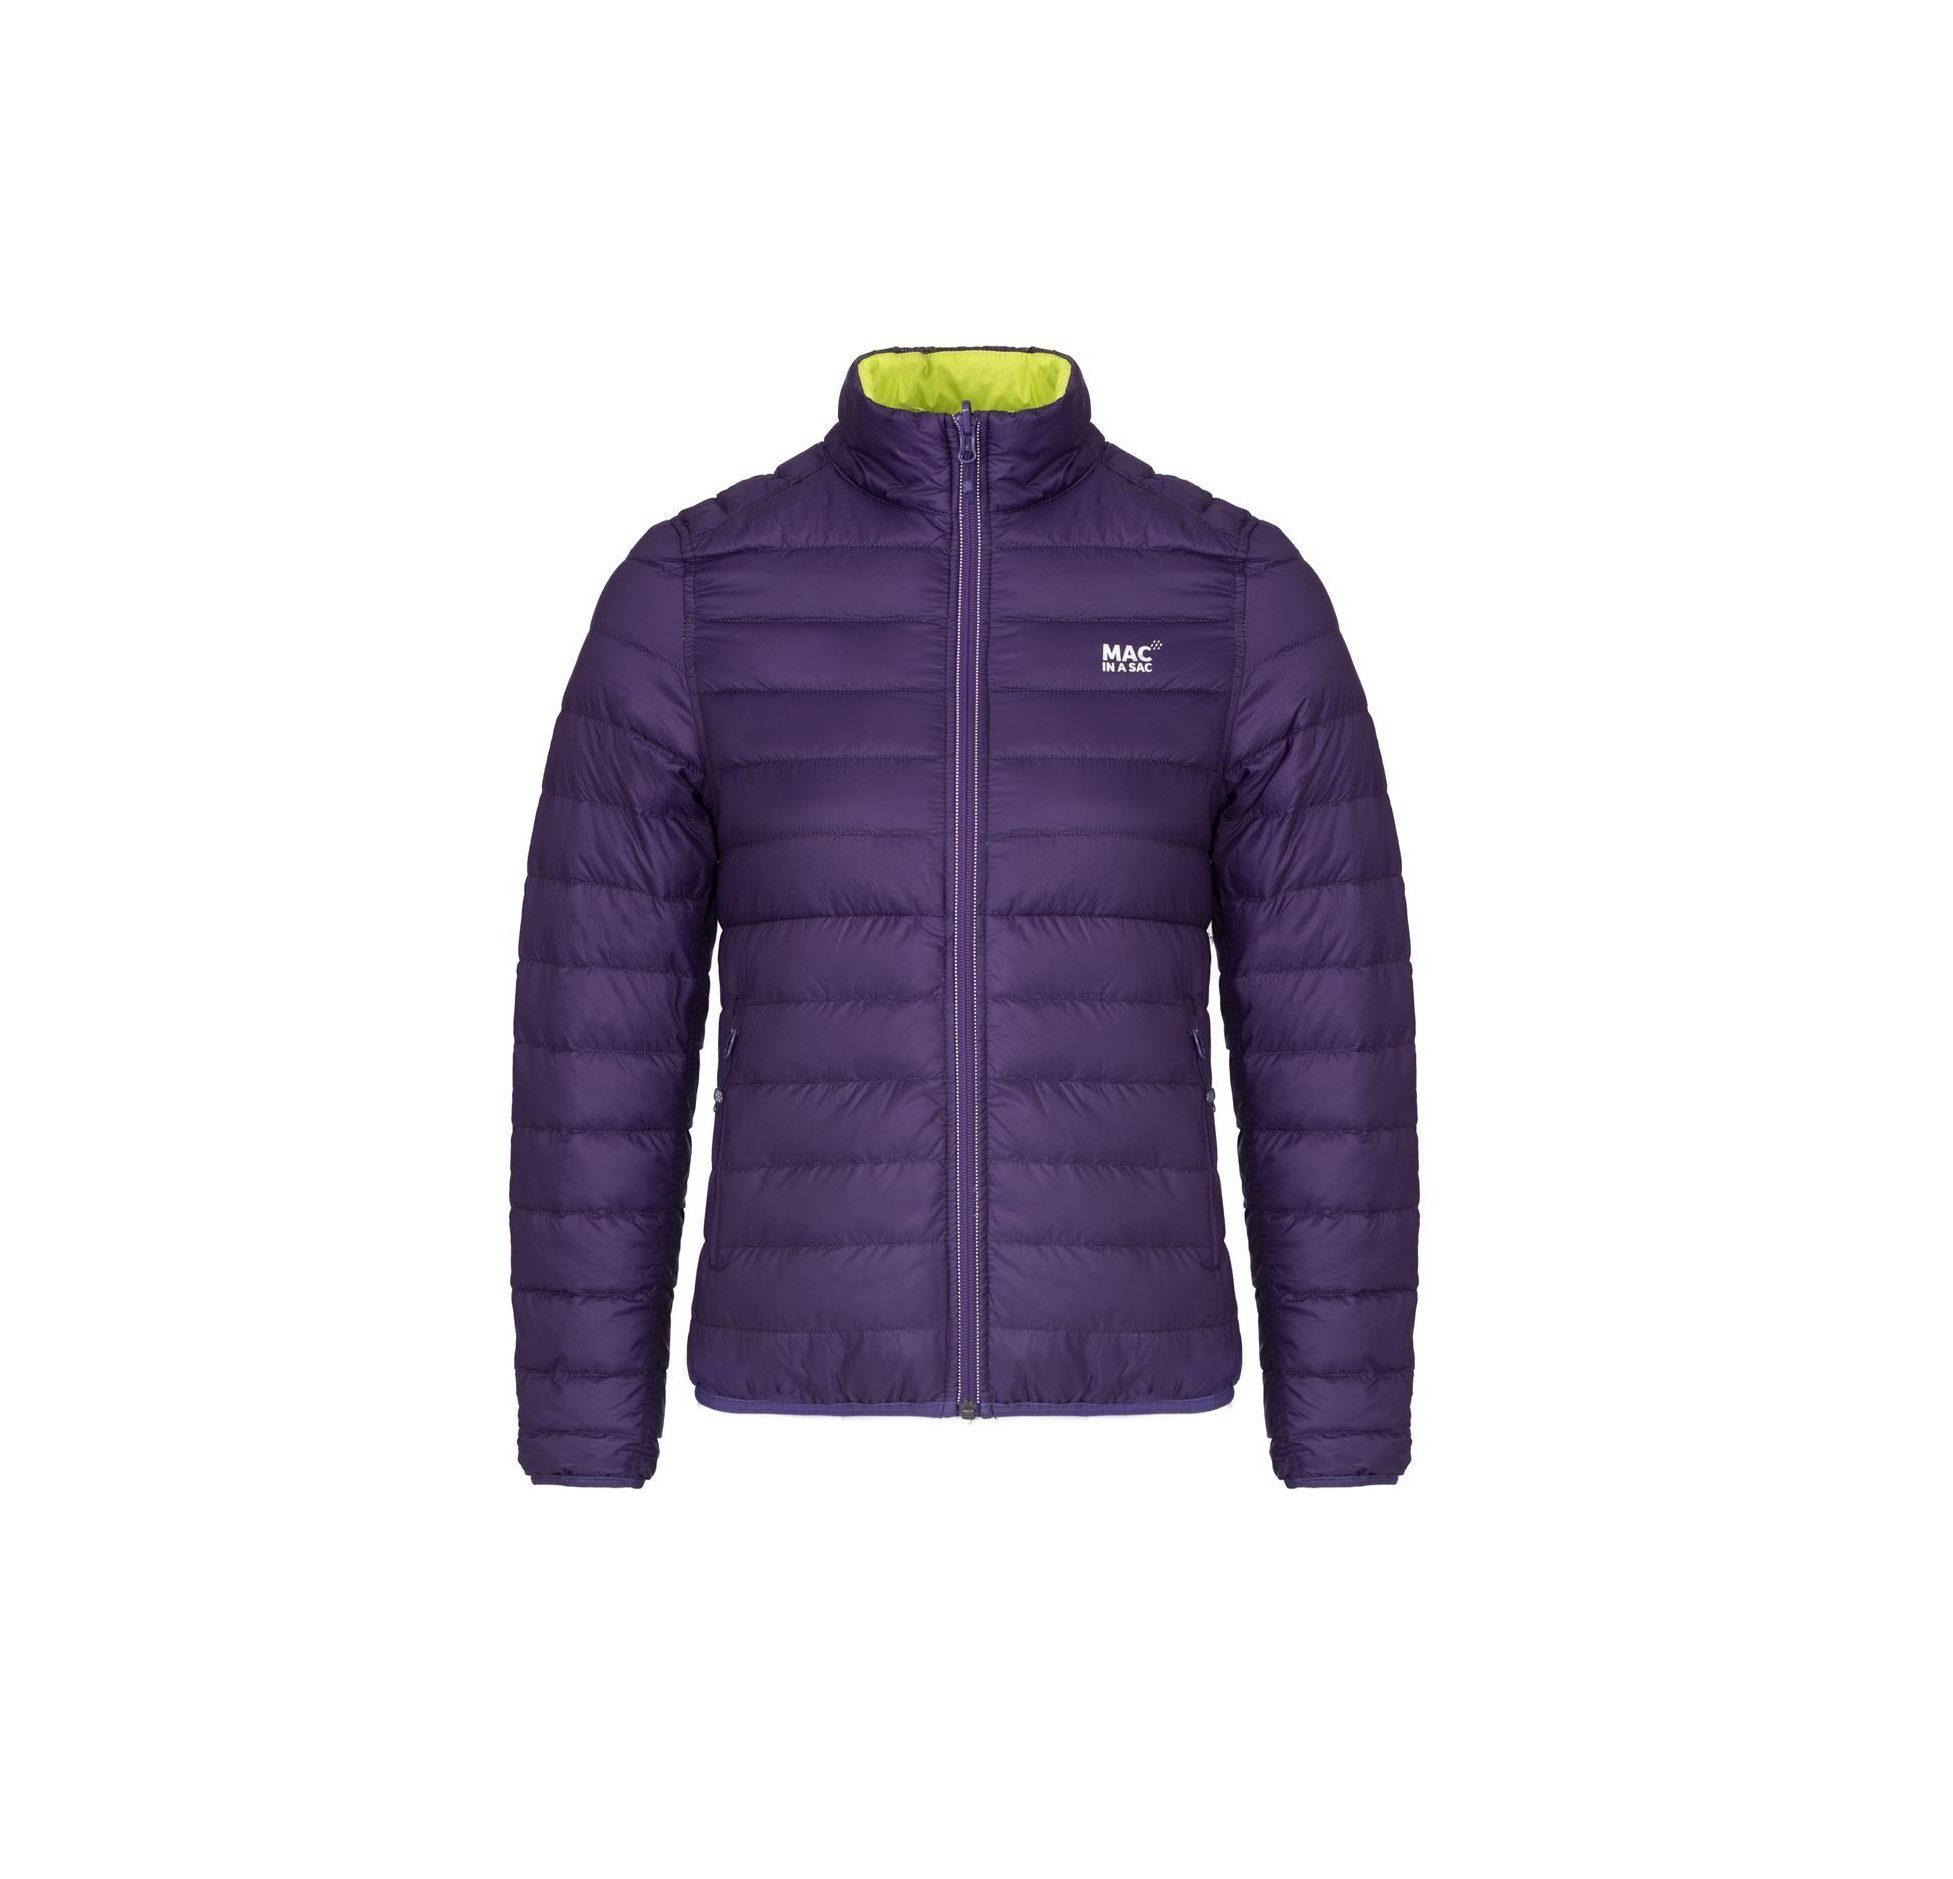 Target Dry Polar Down Jacket - Grape Lime - Punch